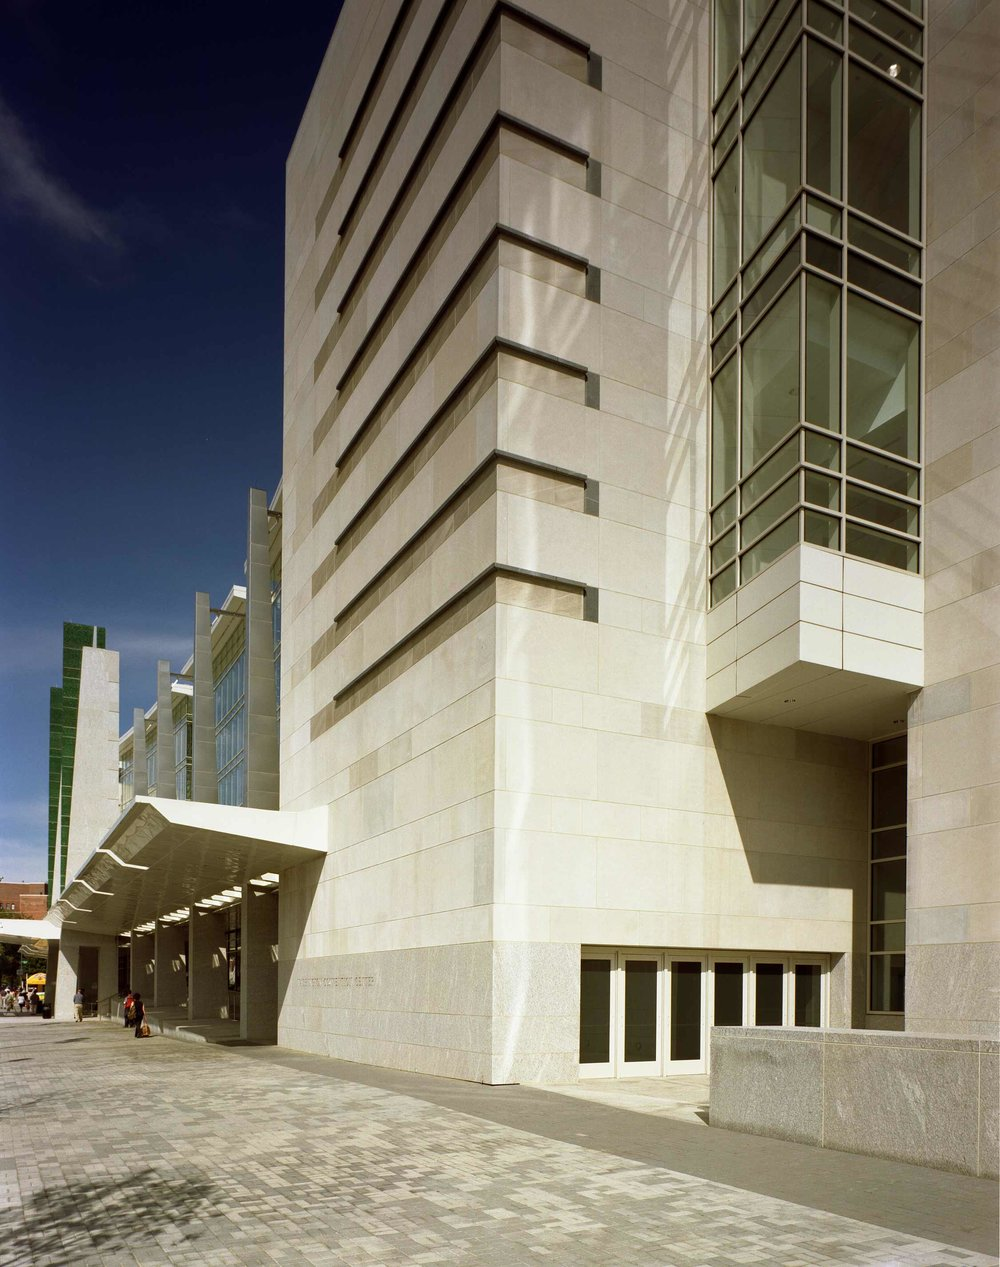 Convention-Center-001-Exterior-1c.jpg